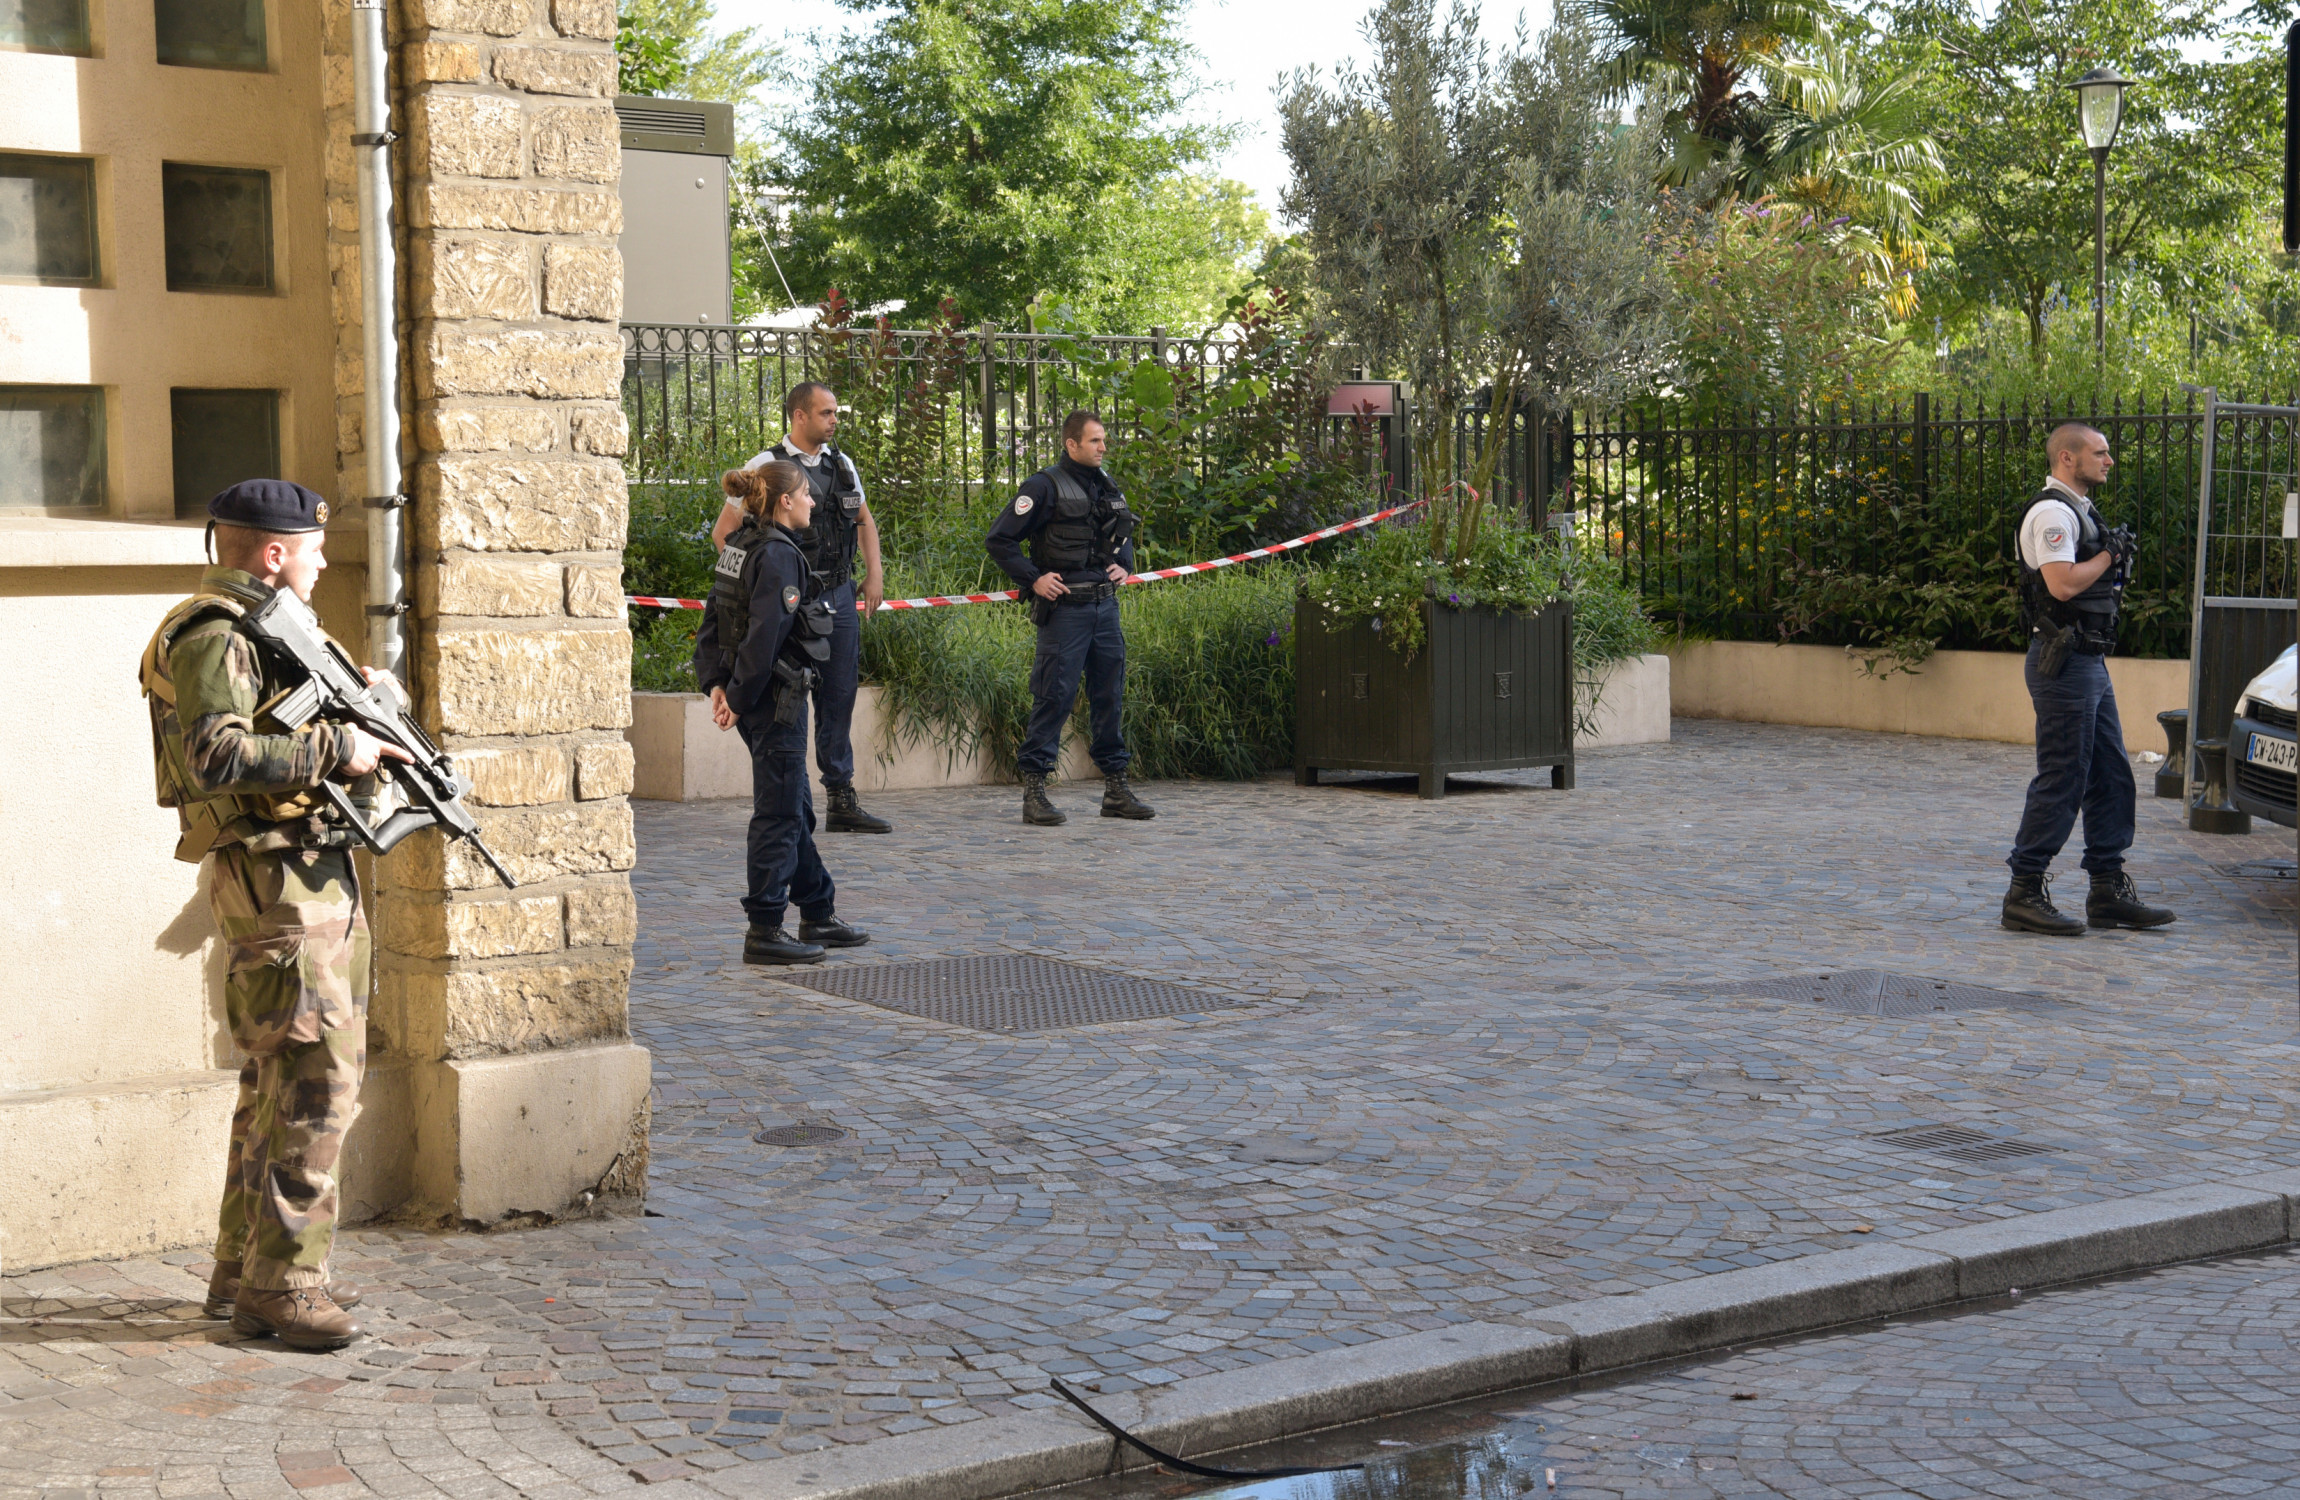 Paris: Car Mowed Down 6 Soldiers, 2 Seriously Injured